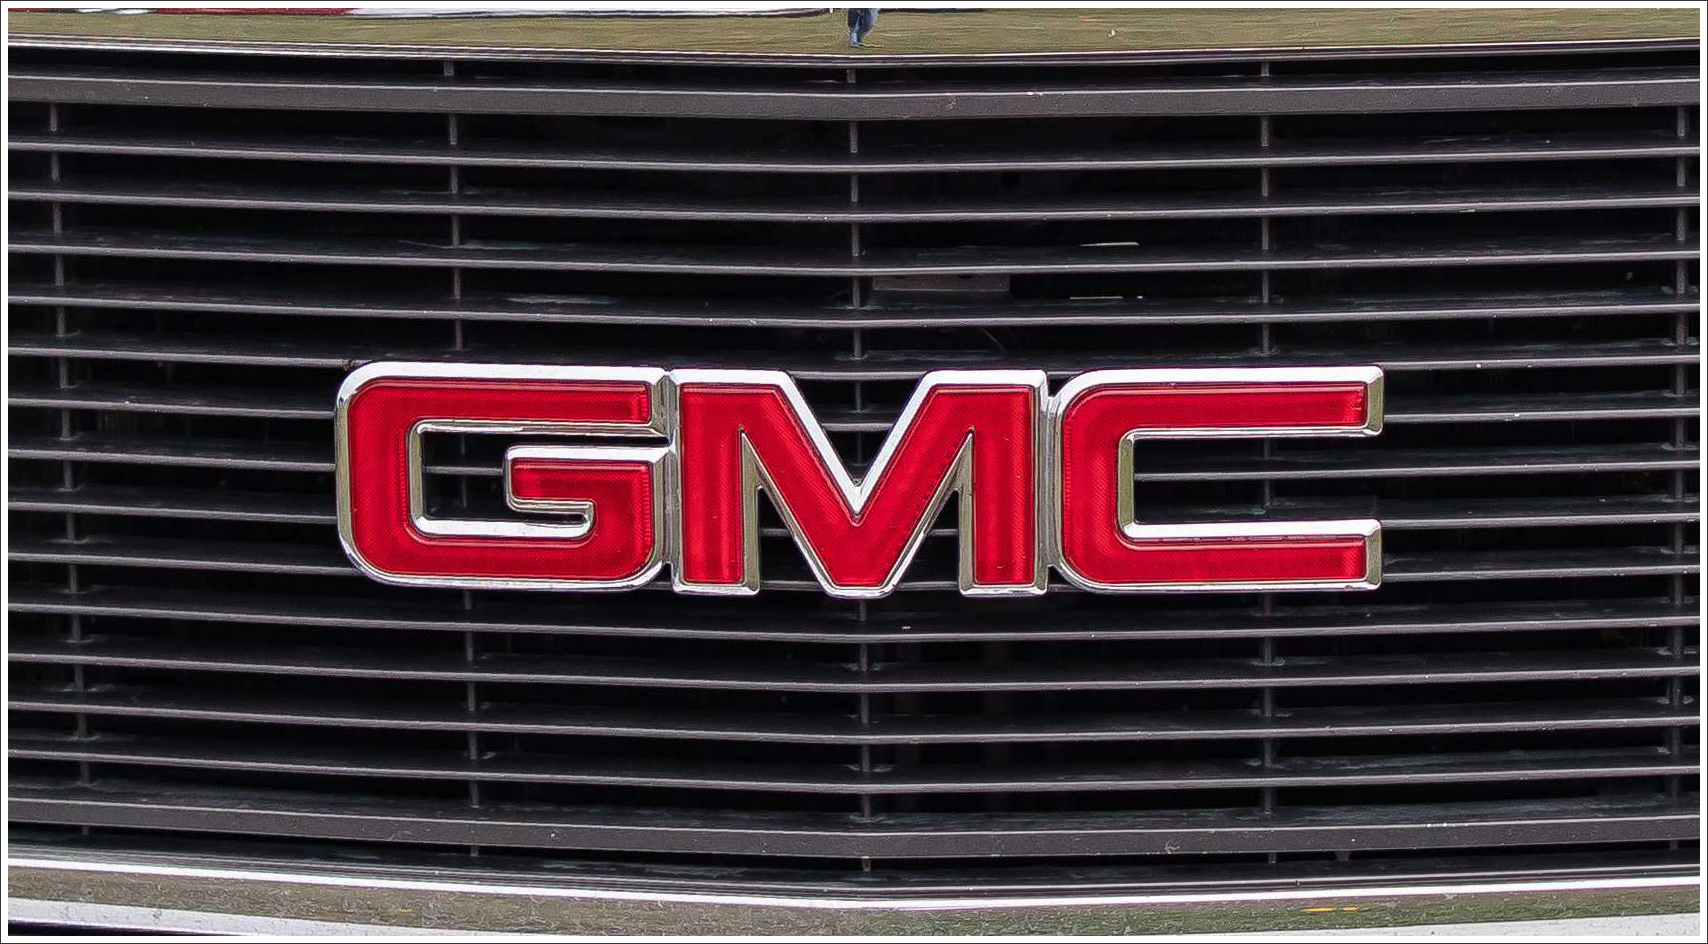 Gmc Logo Meaning And History Latest Models World Cars